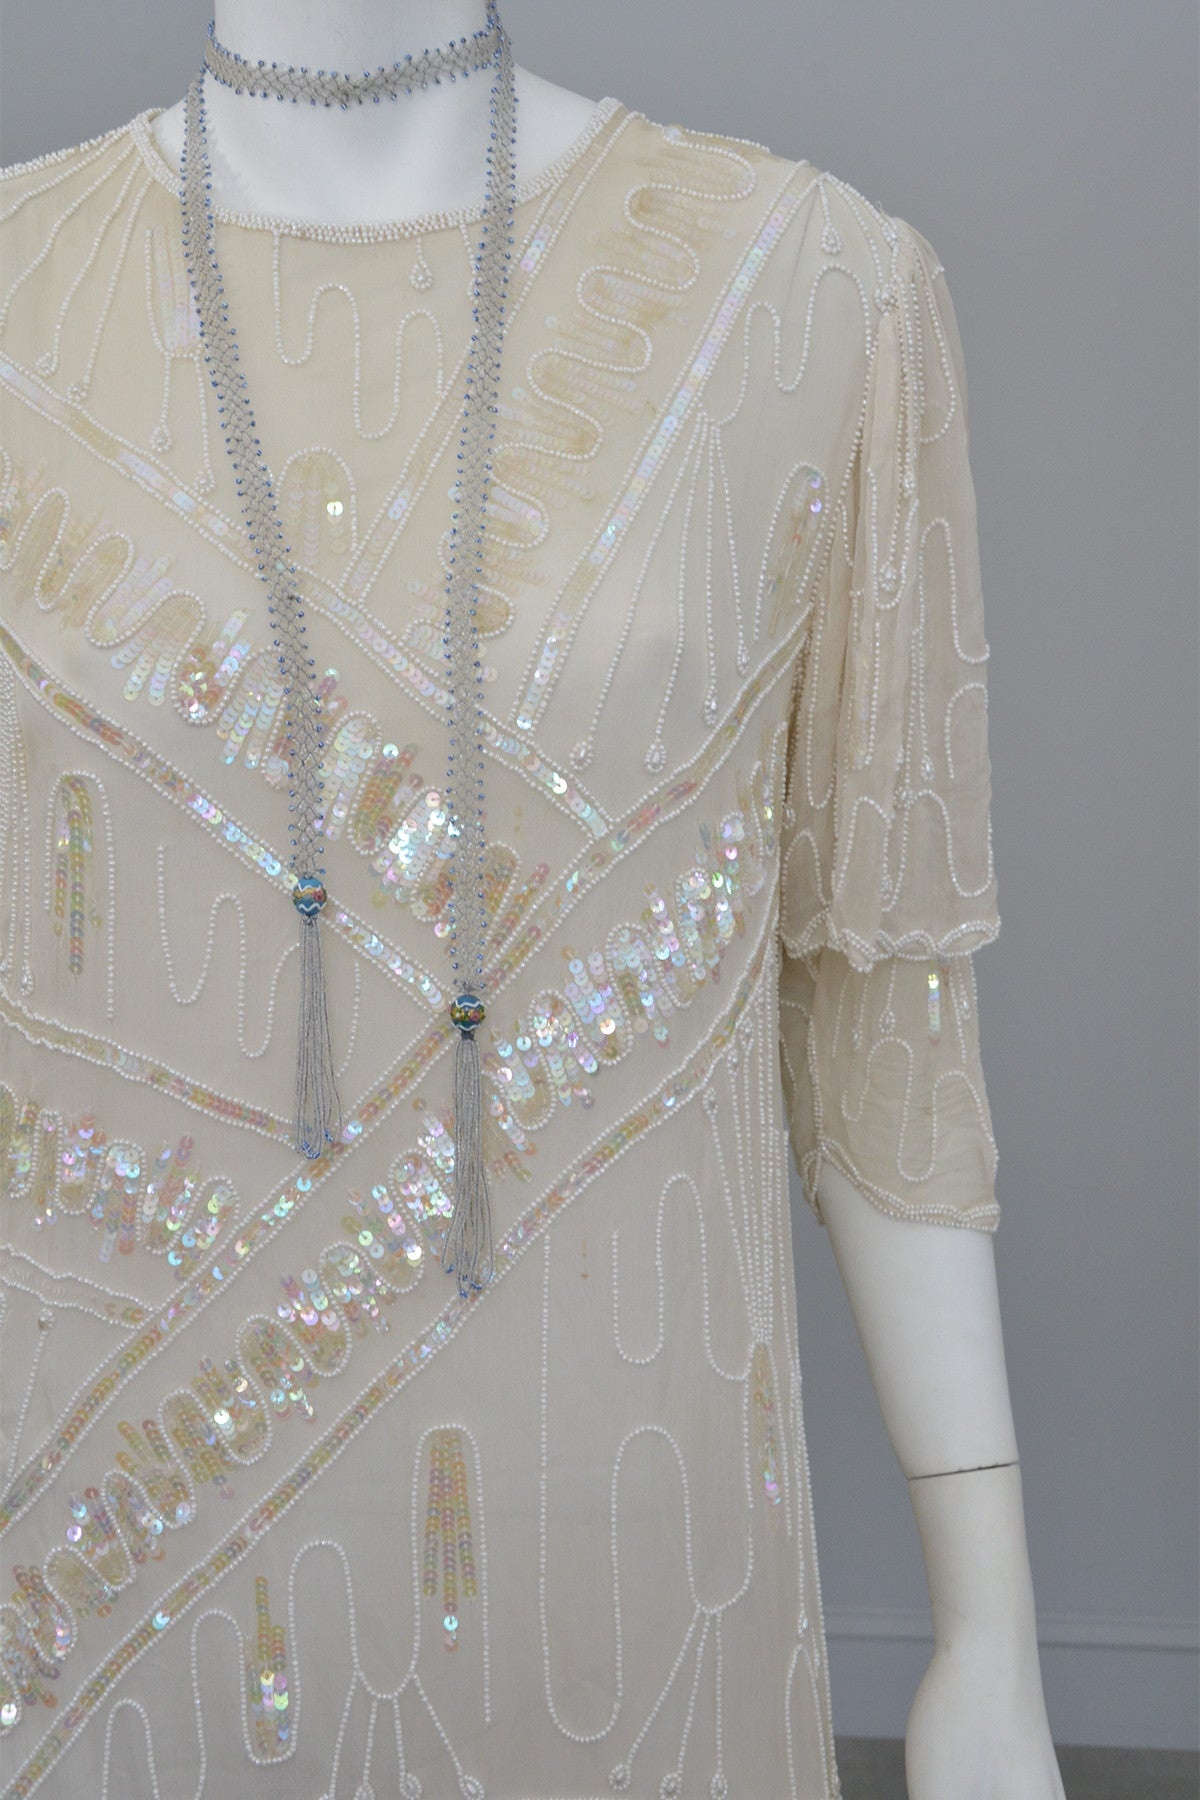 70s 20s Antique White Sequins Pearls Titanic Flapper Dress by Lillie Rubin